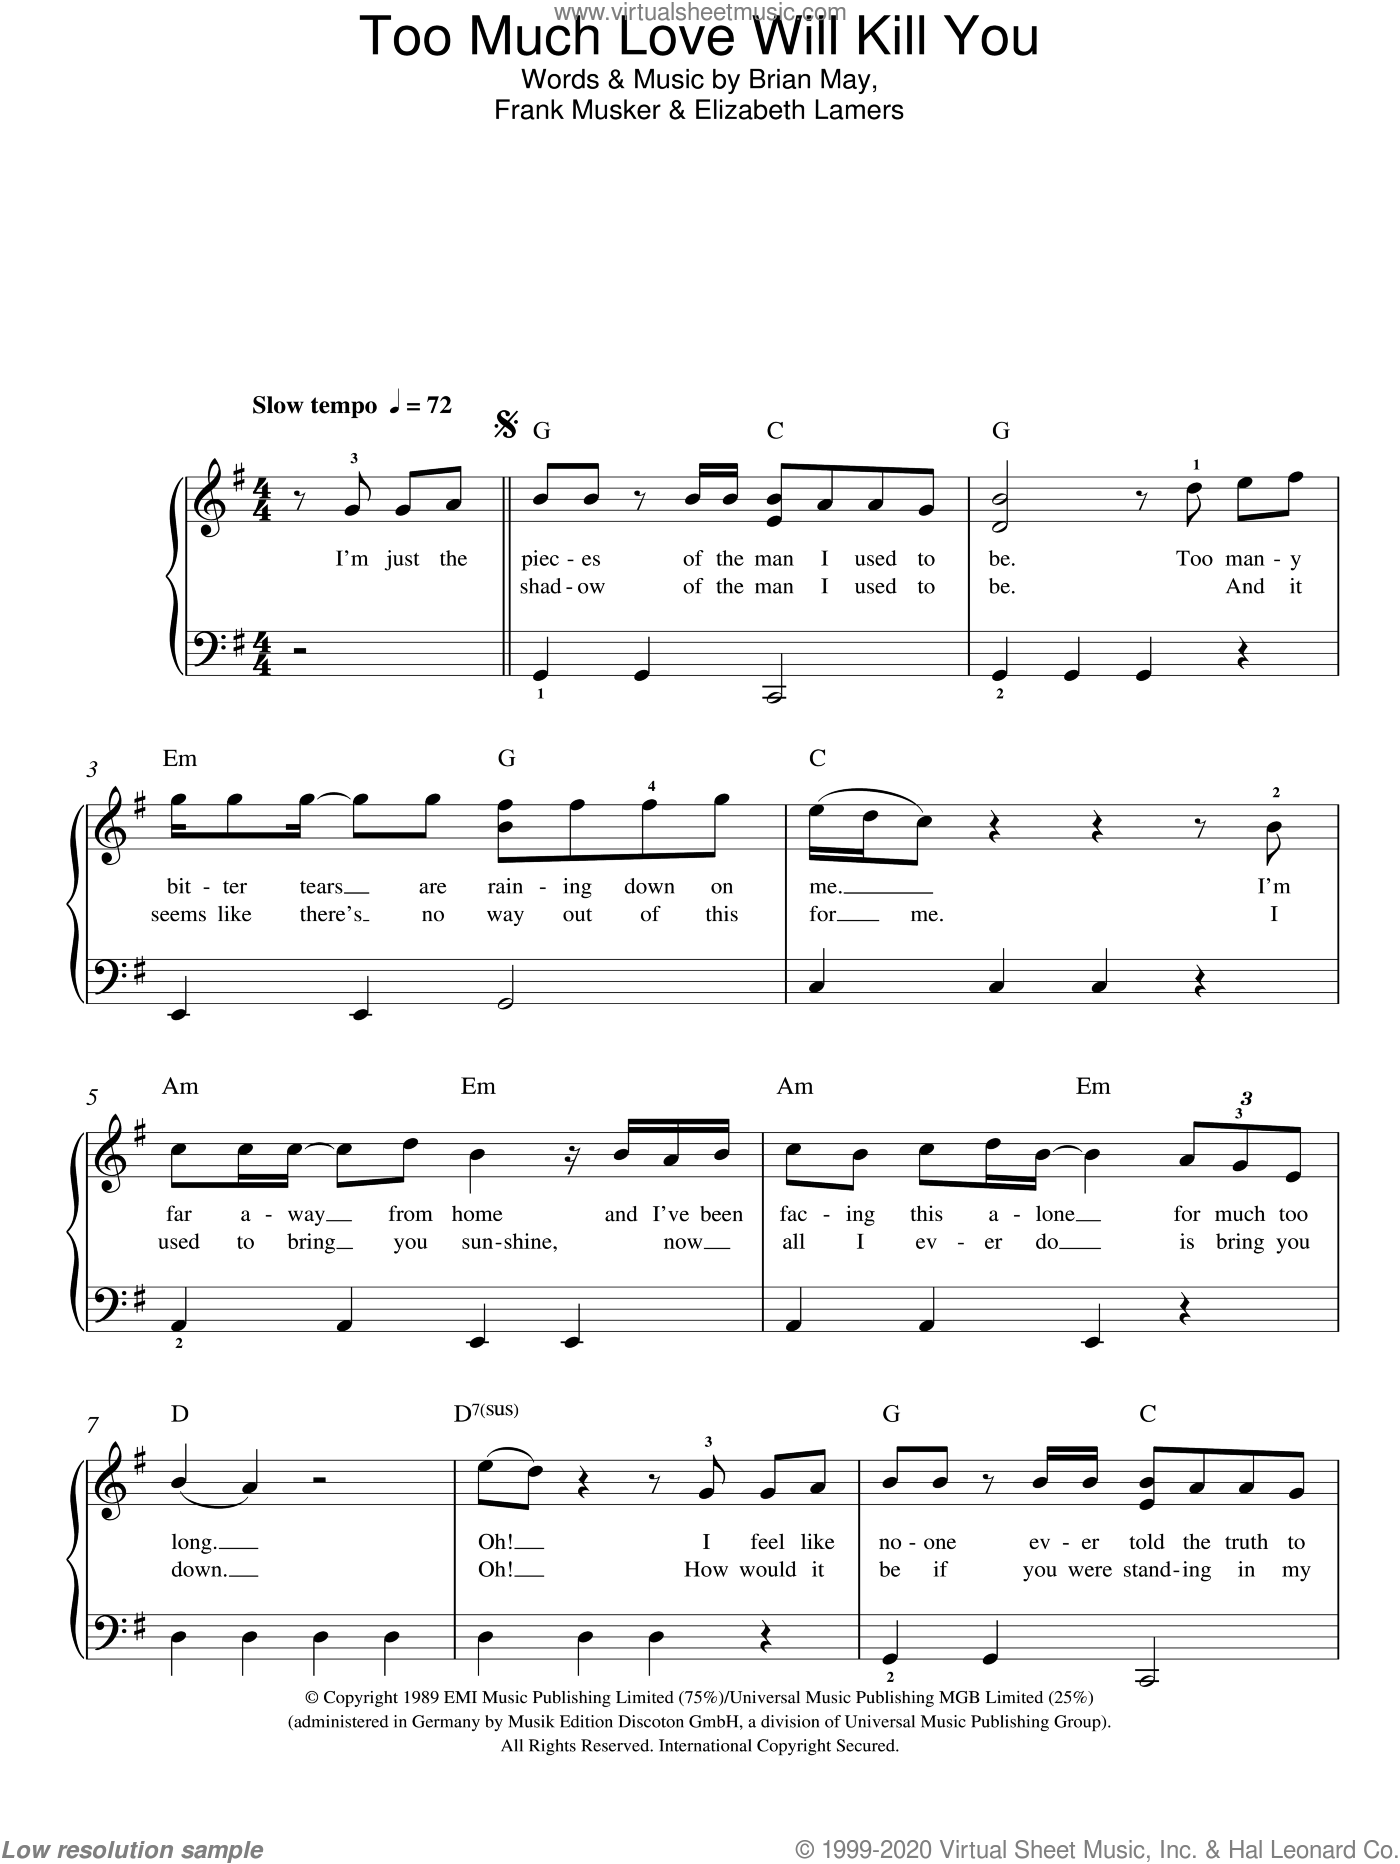 Too Much Love Will Kill You sheet music for piano solo (chords) by Frank Musker